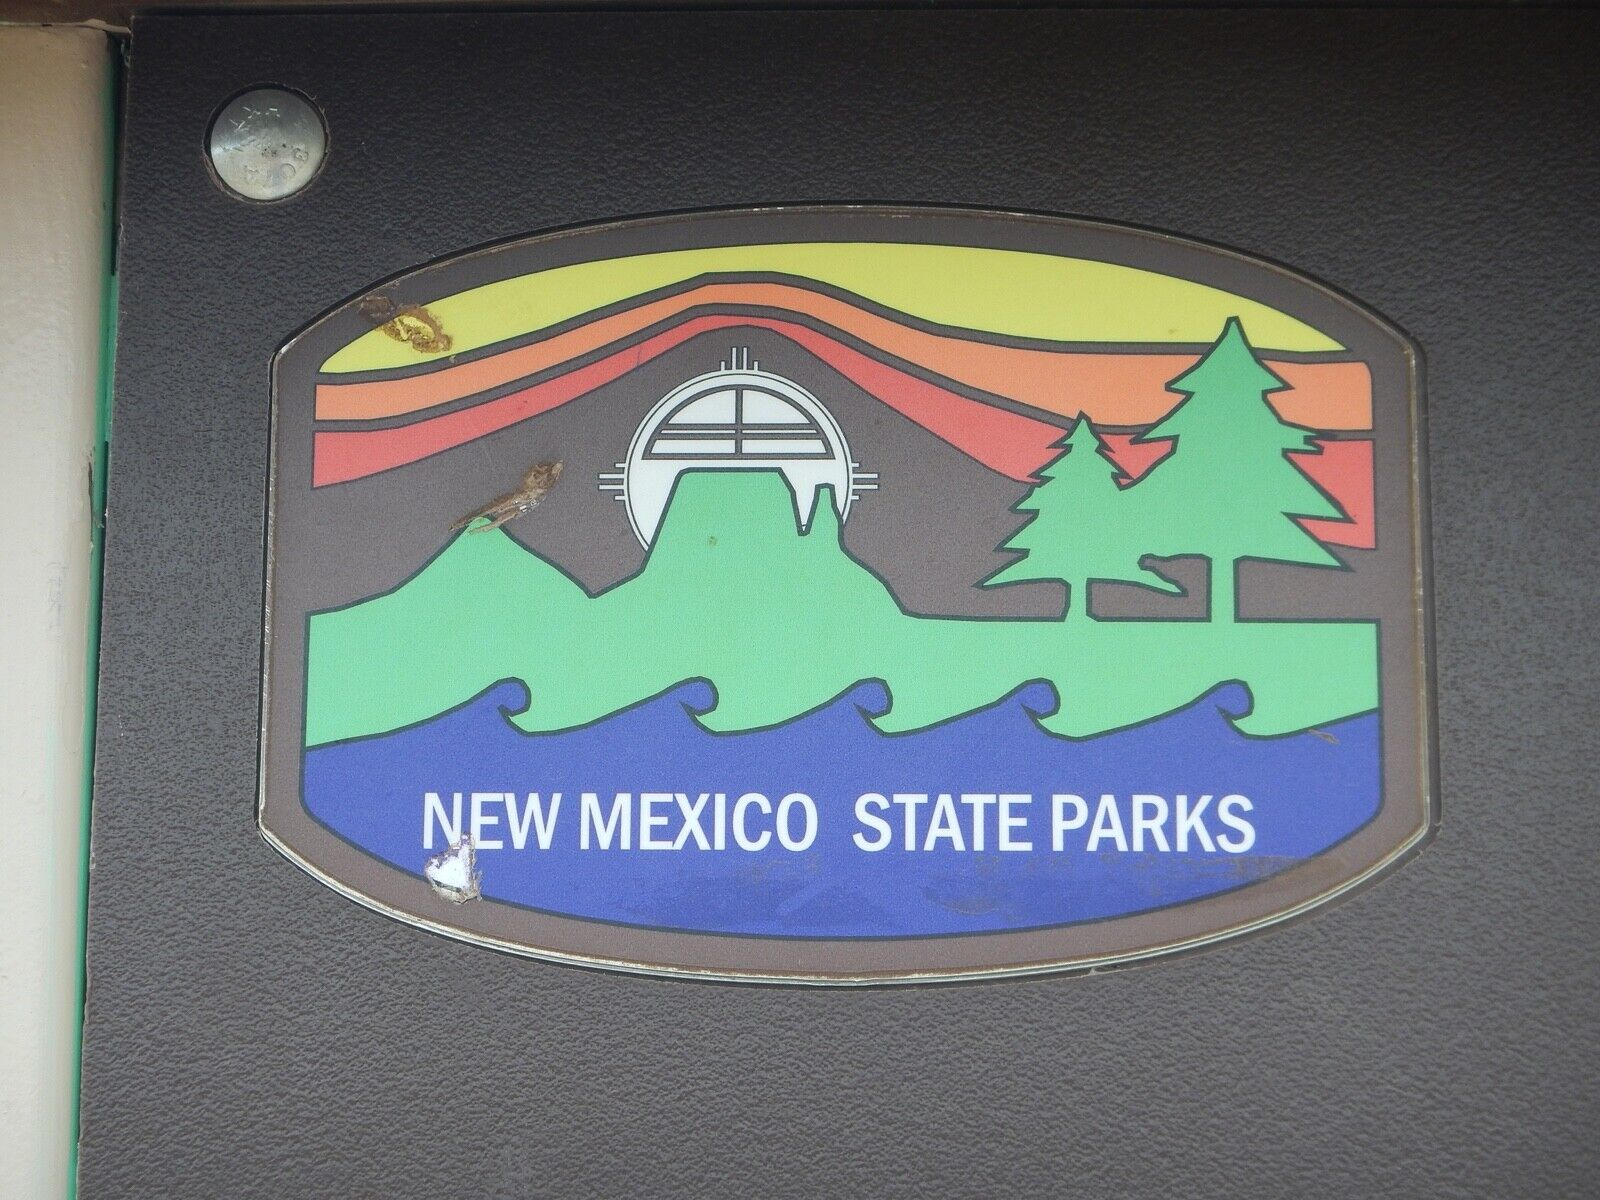 LUNA CO, NM - LOW MONTHLY PAYMENTS - $5.00